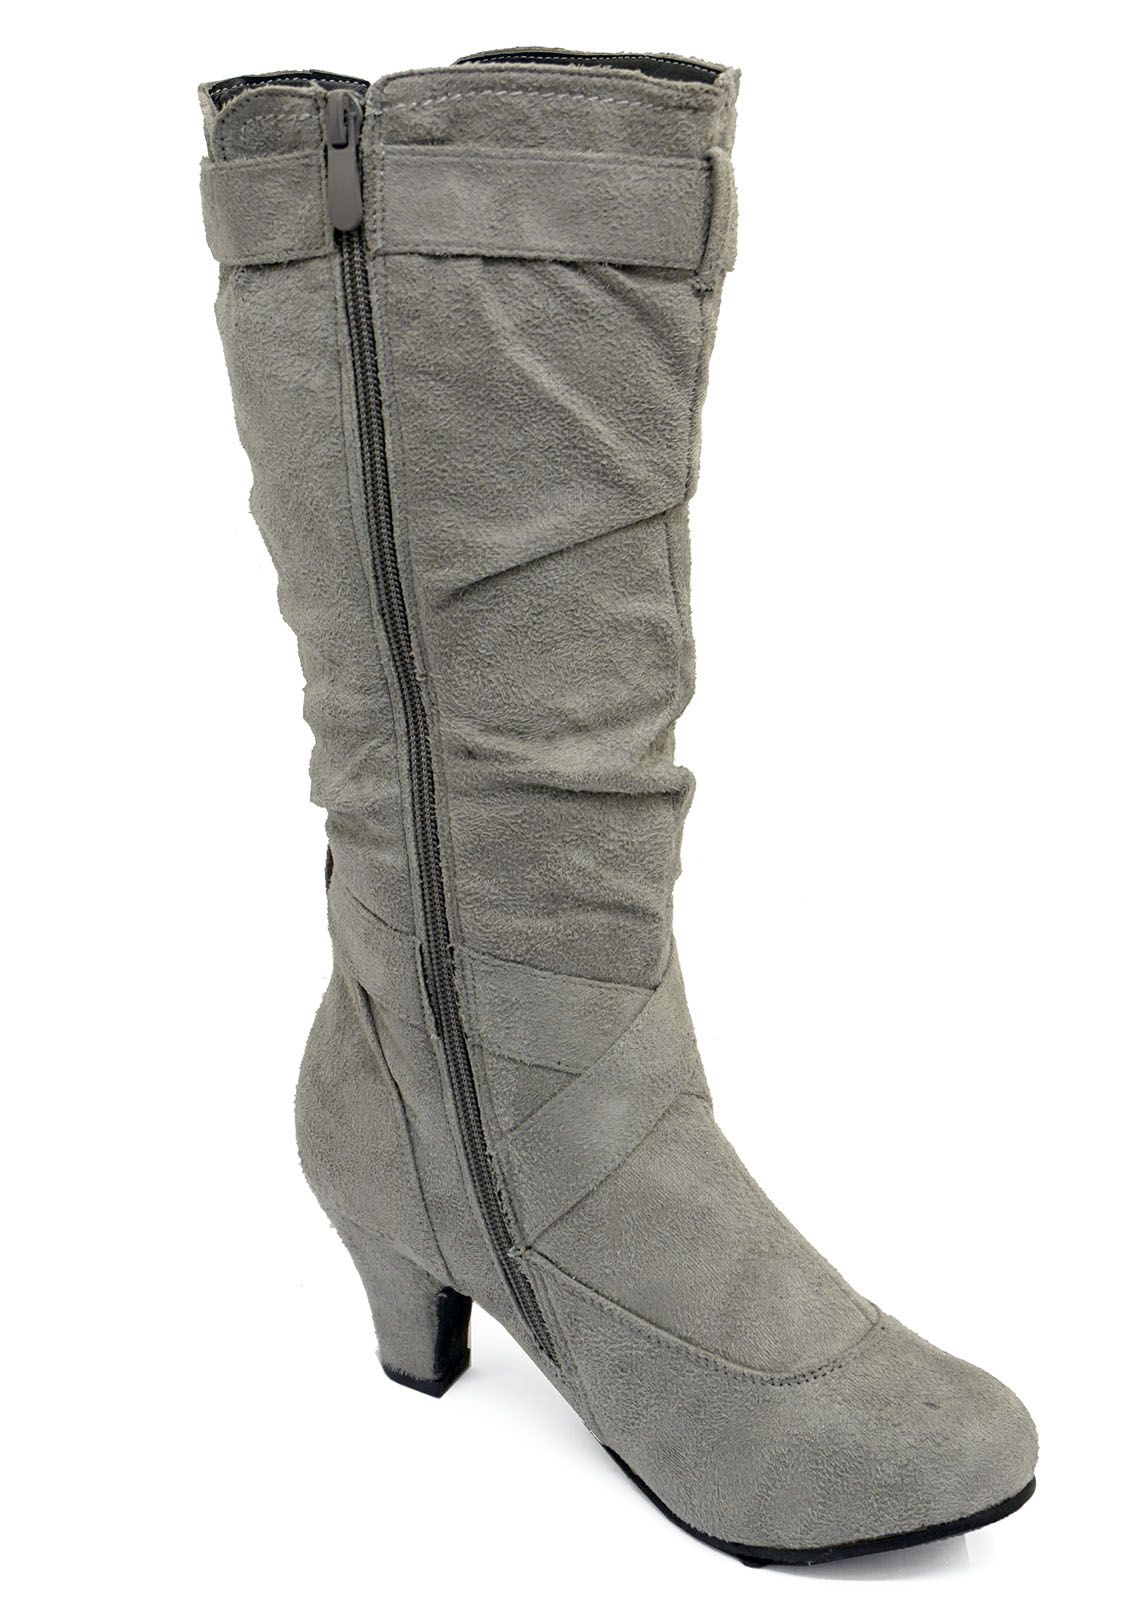 LADIES-GREY-ZIP-UP-BIKER-SLOUCH-RUCHED-TALL-KNEE-CALF-LOW-HEEL-BOOTS-SHOES-4-10 thumbnail 10